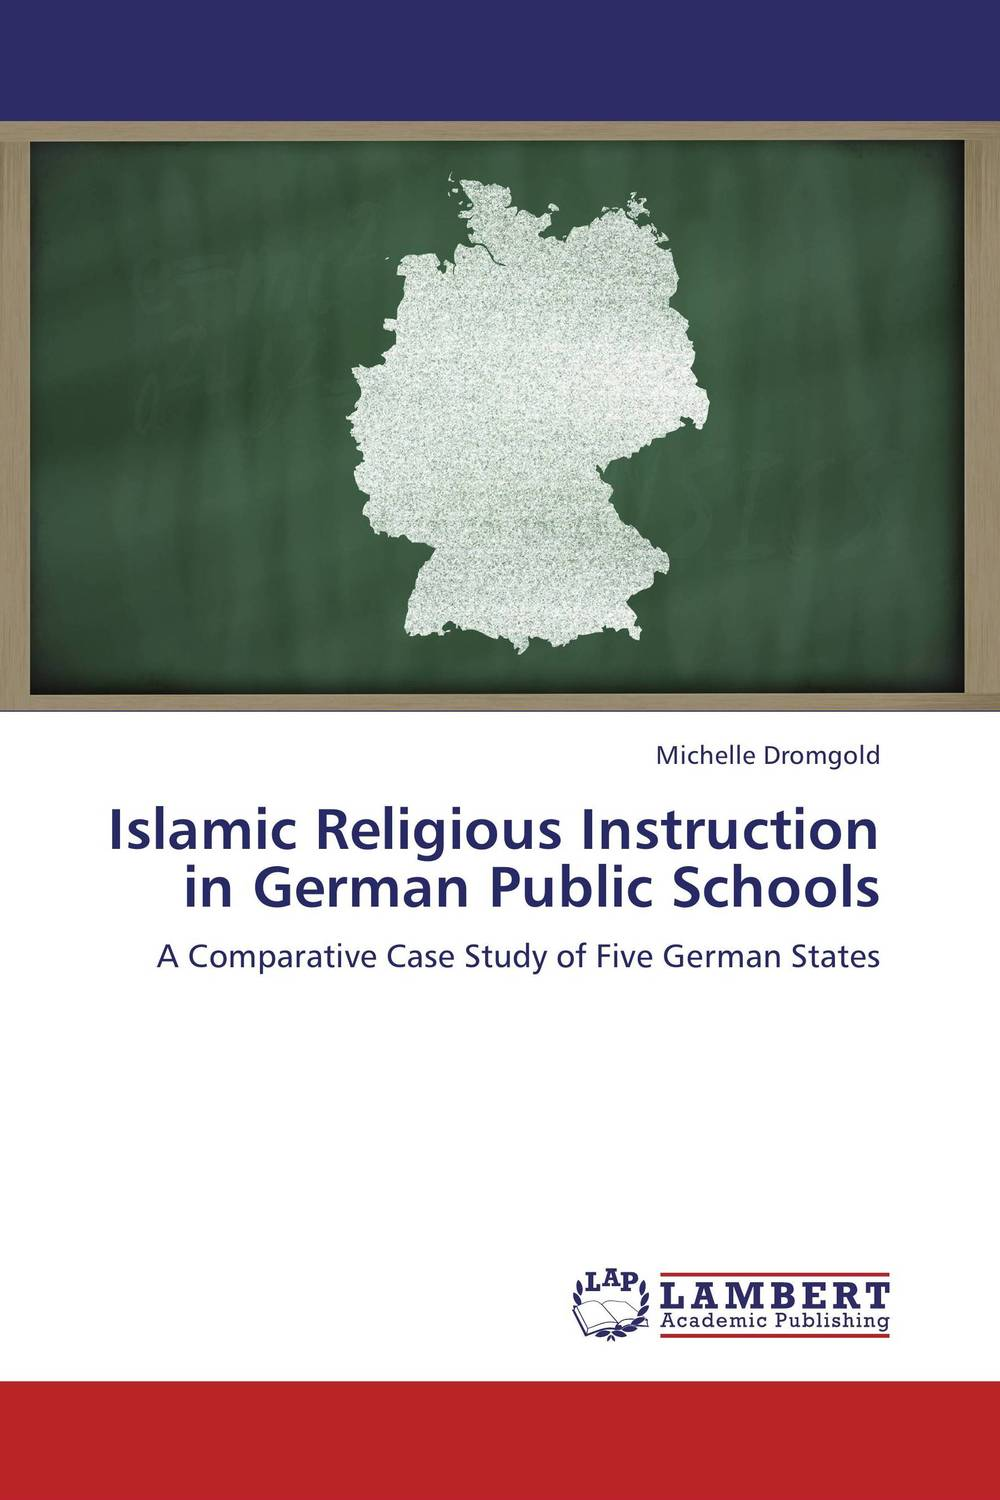 Islamic Religious Instruction in German Public Schools guilt and defense – on the legacies of national socialism in postwar germany